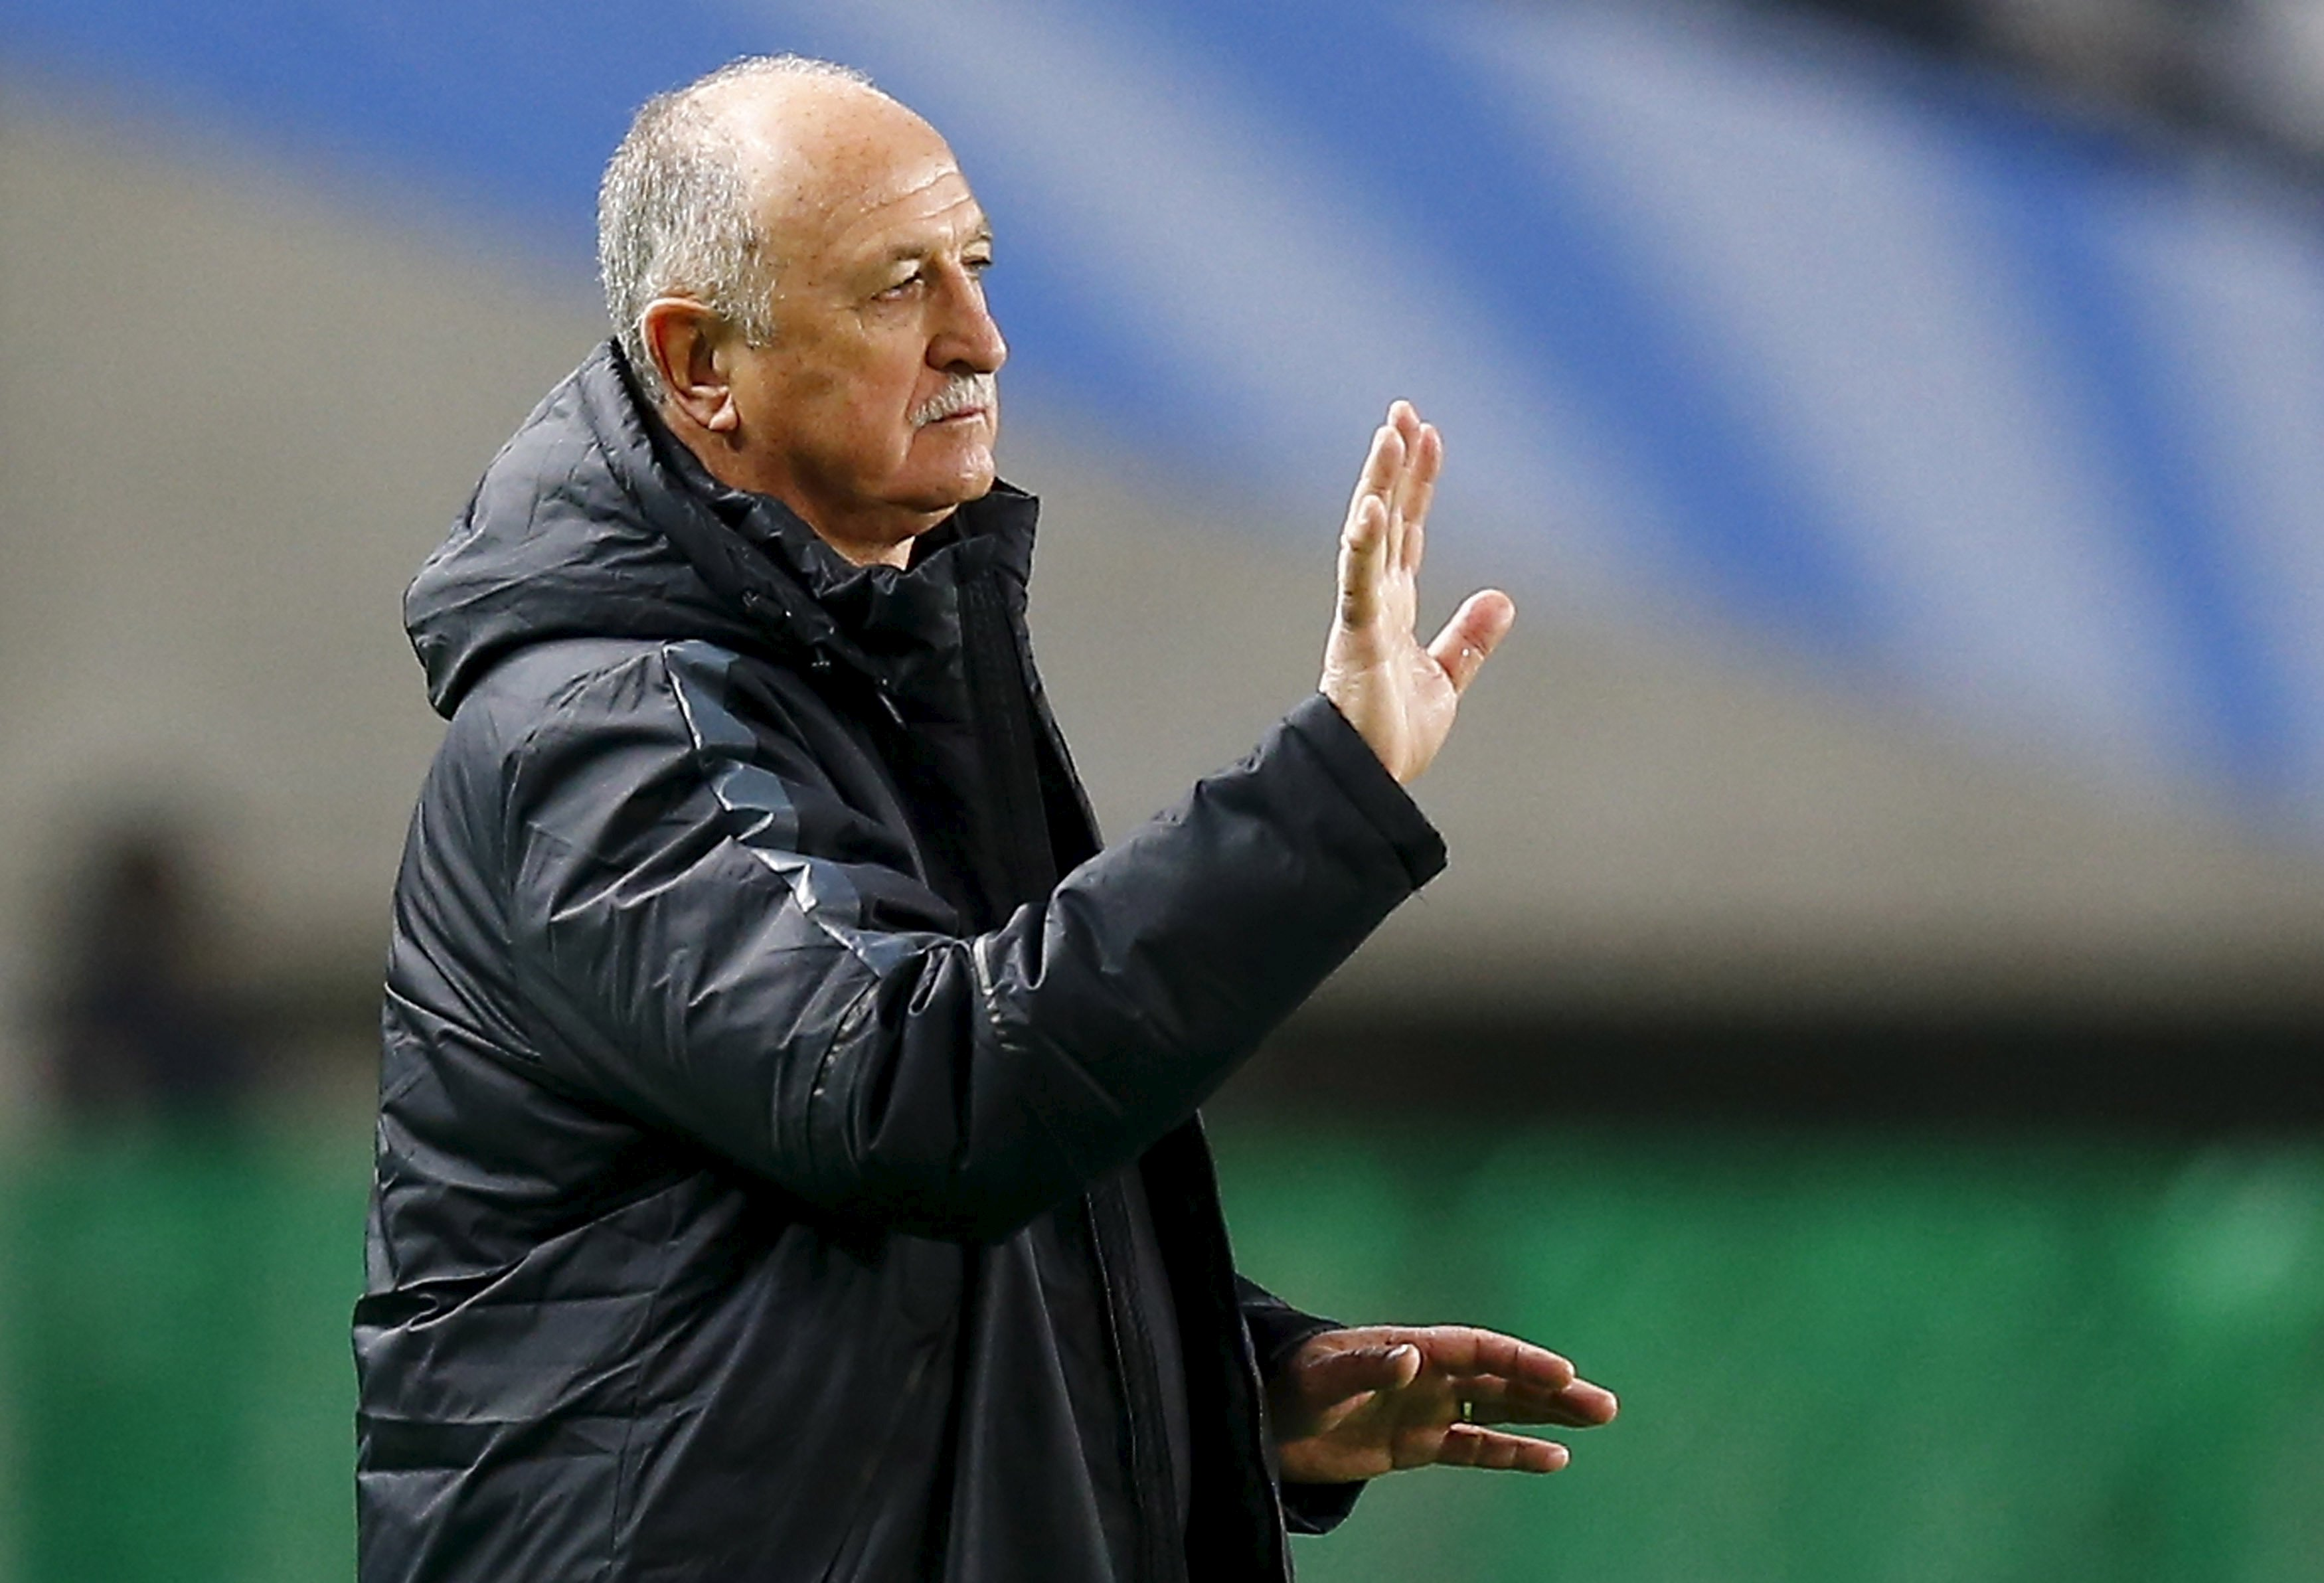 Brazilian head coach Luiz Felipe Scolari of China's Guangzhou Evergrande directs his players during their Club World Cup quarter-final soccer match against Mexico's Club America in Osaka, western Japan, December 13, 2015. Photo: Reuters